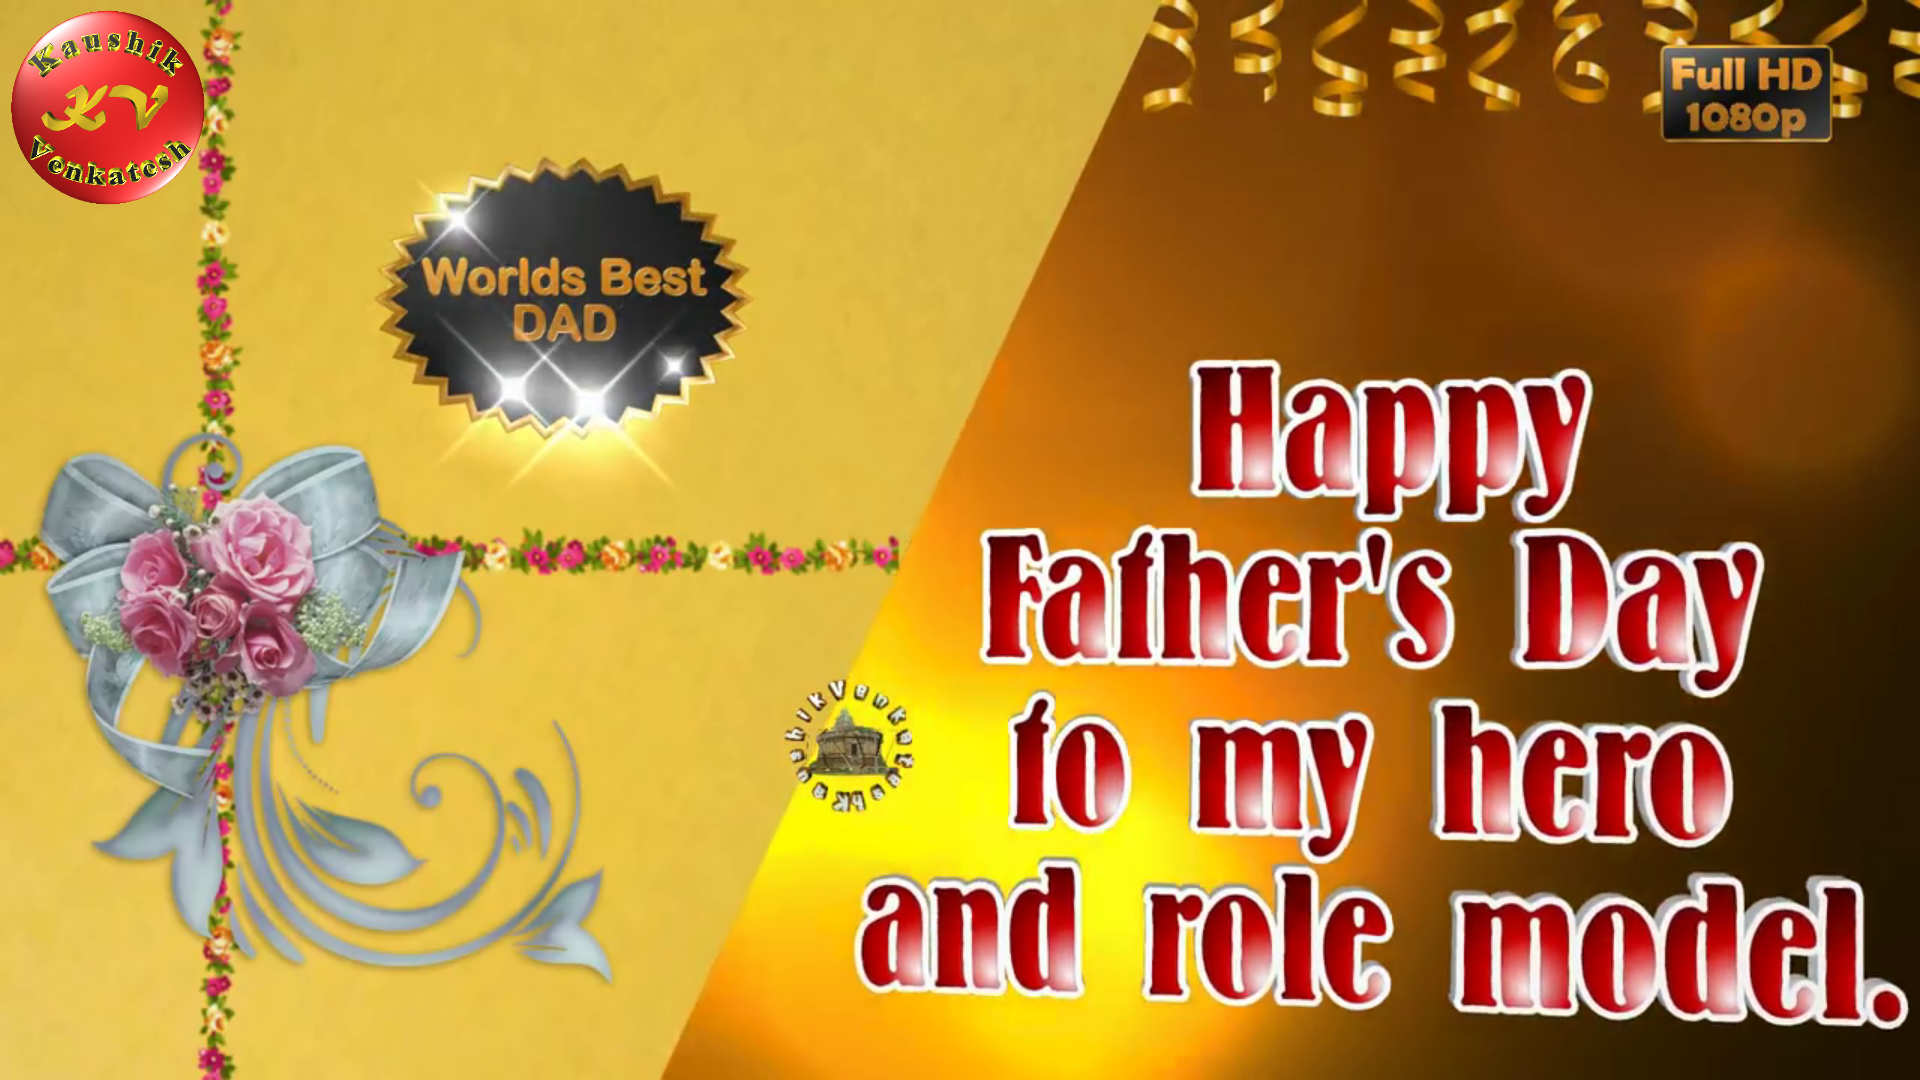 Image of Fathers Day Greetings